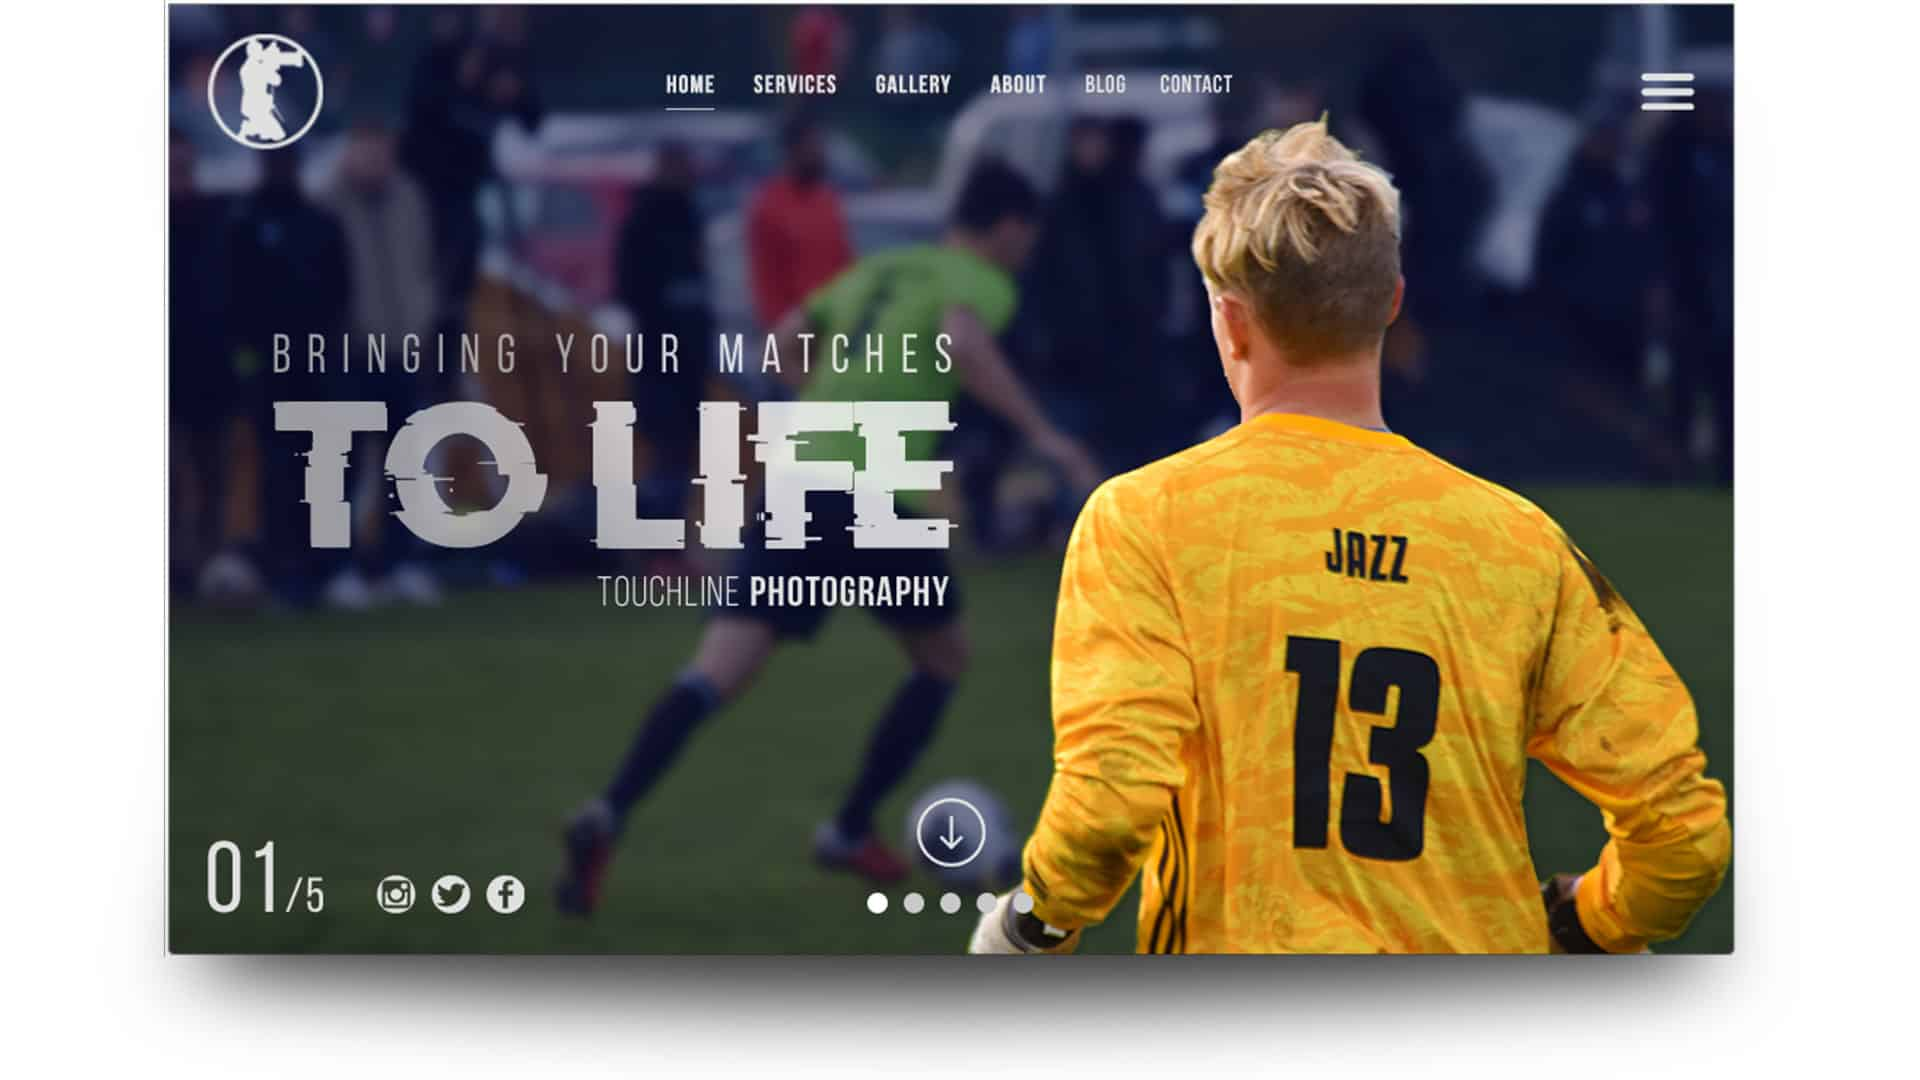 touchline photography - wordpress website design